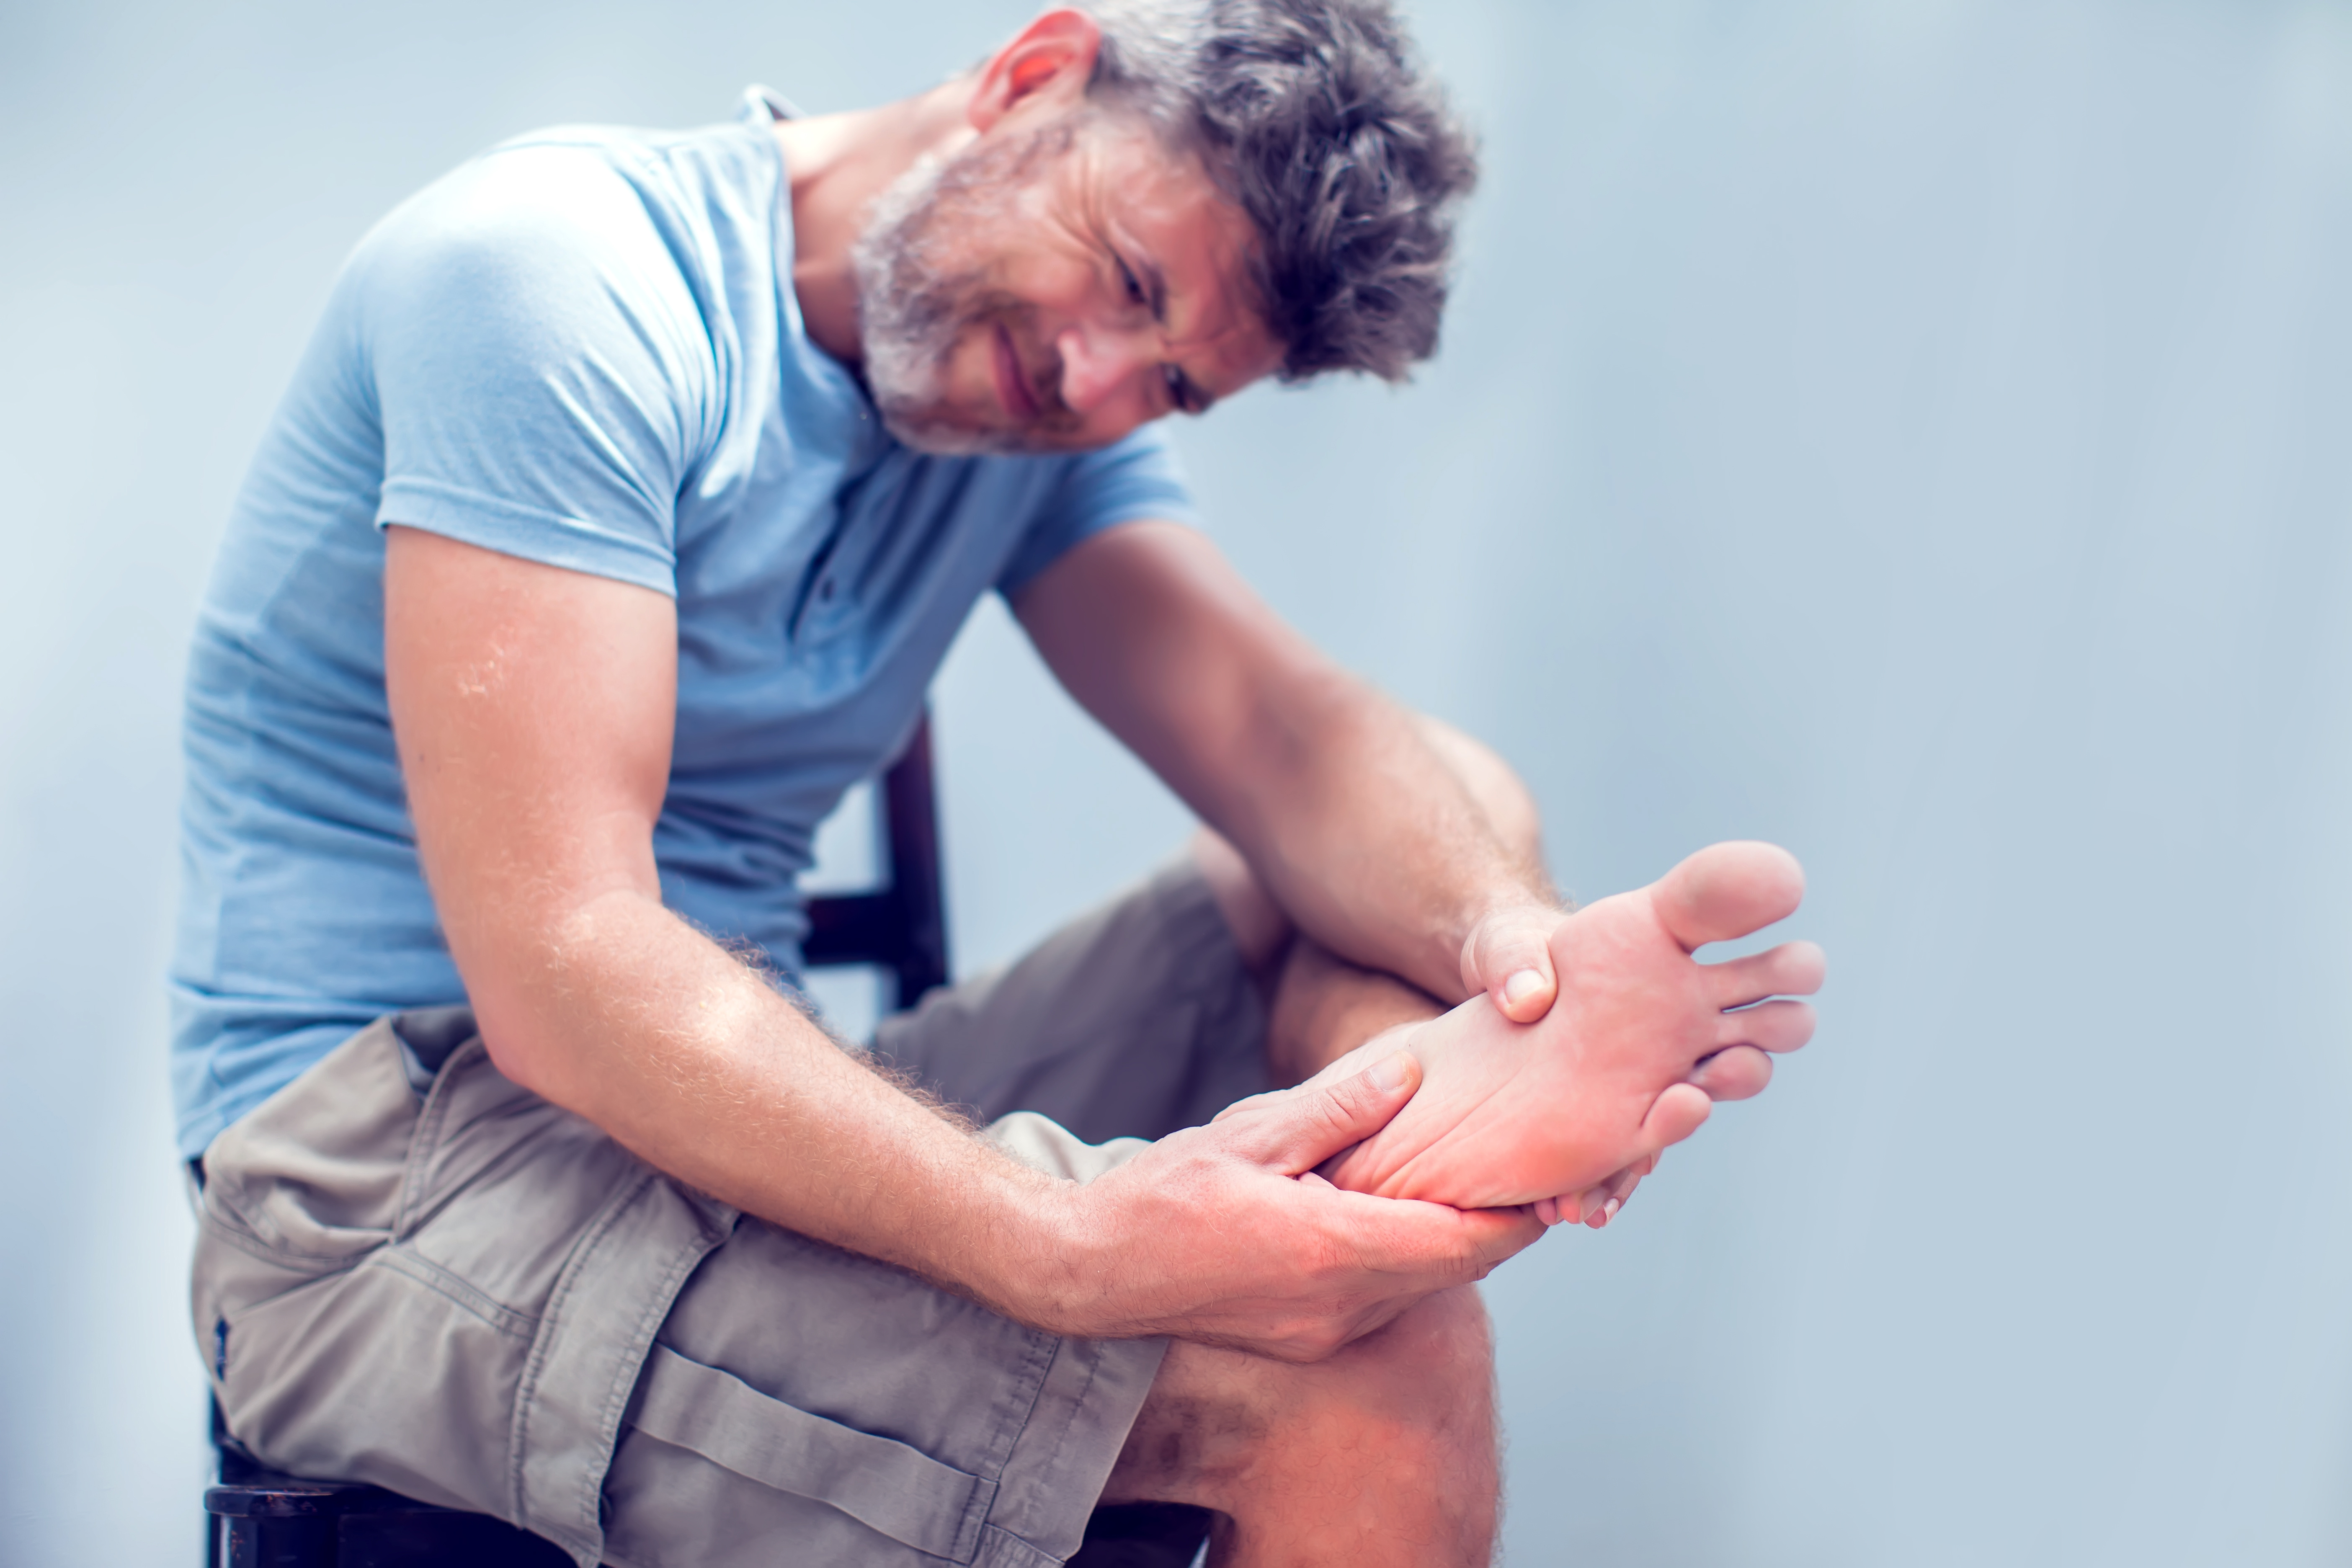 AdobeStock 212216478 - Man hand holding foot with pain, health care and medical concept